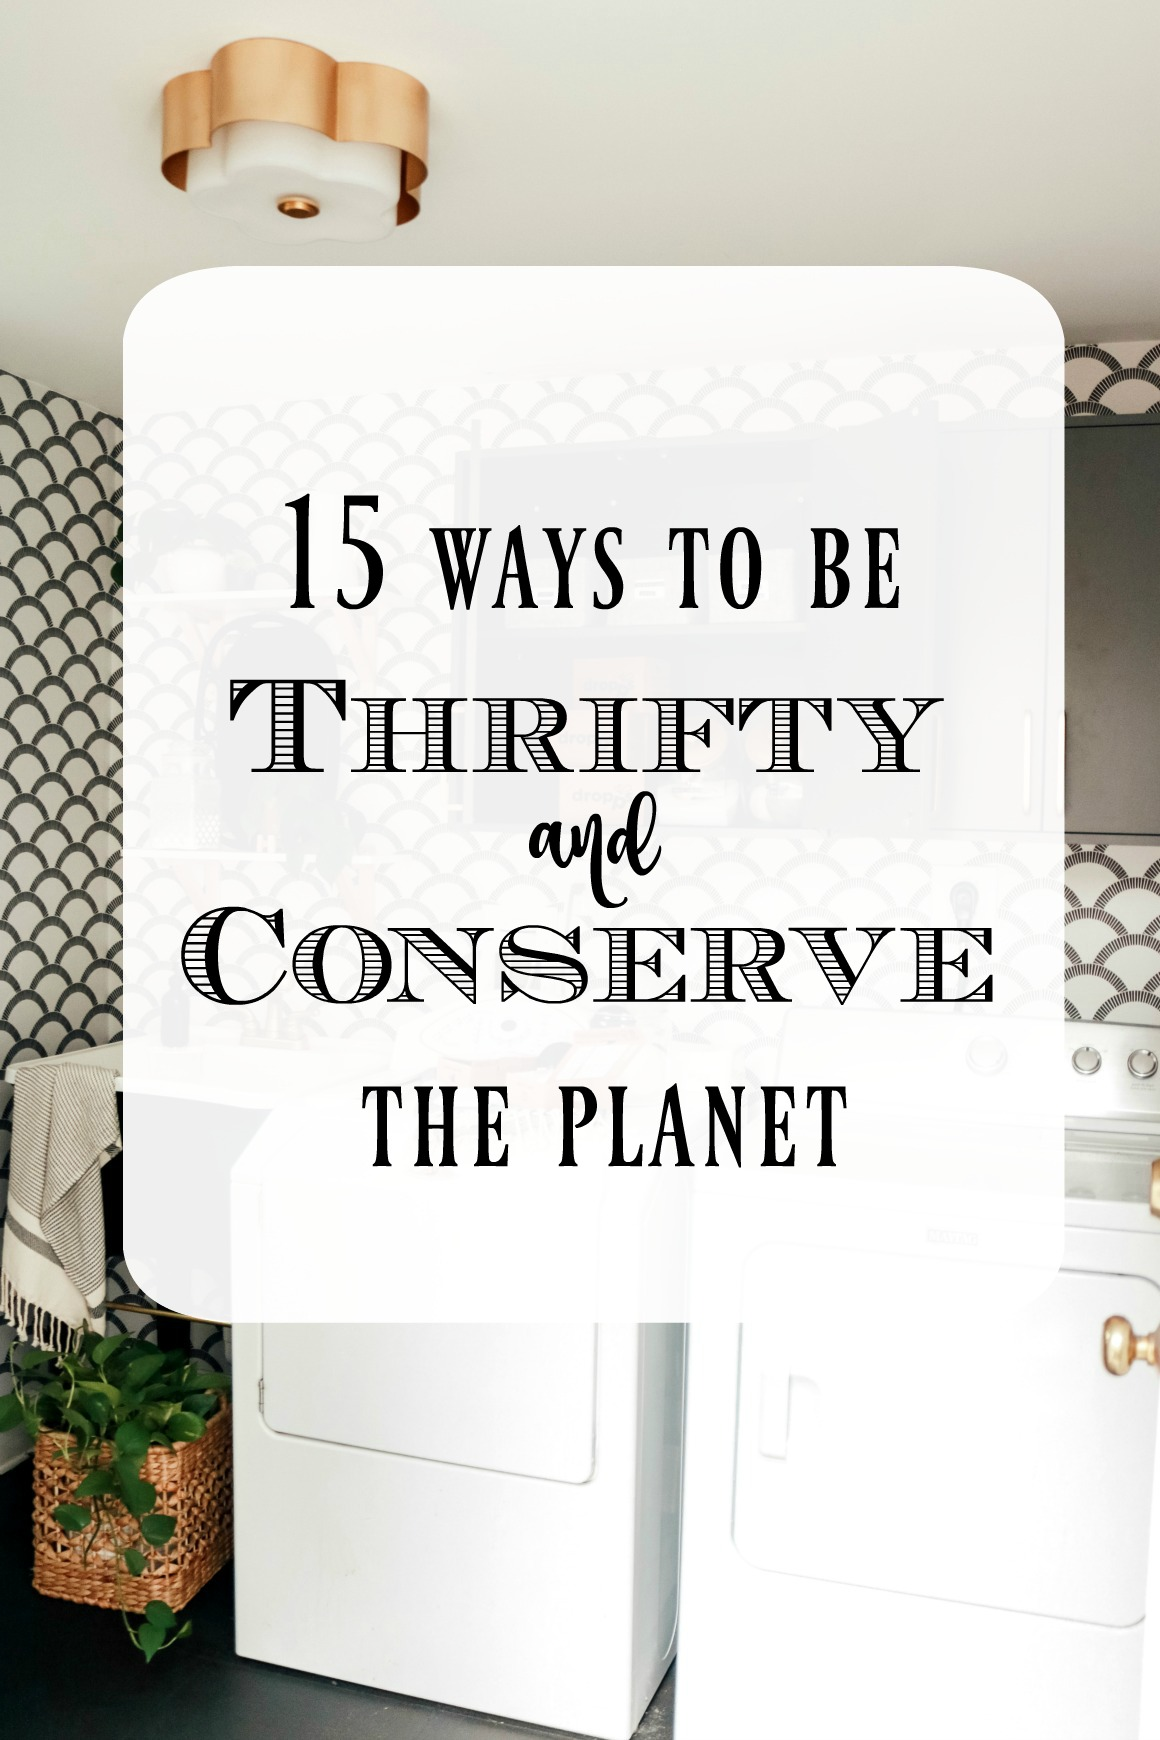 15 Ways to Be Thrifty and Conserve the Planet with Printable!